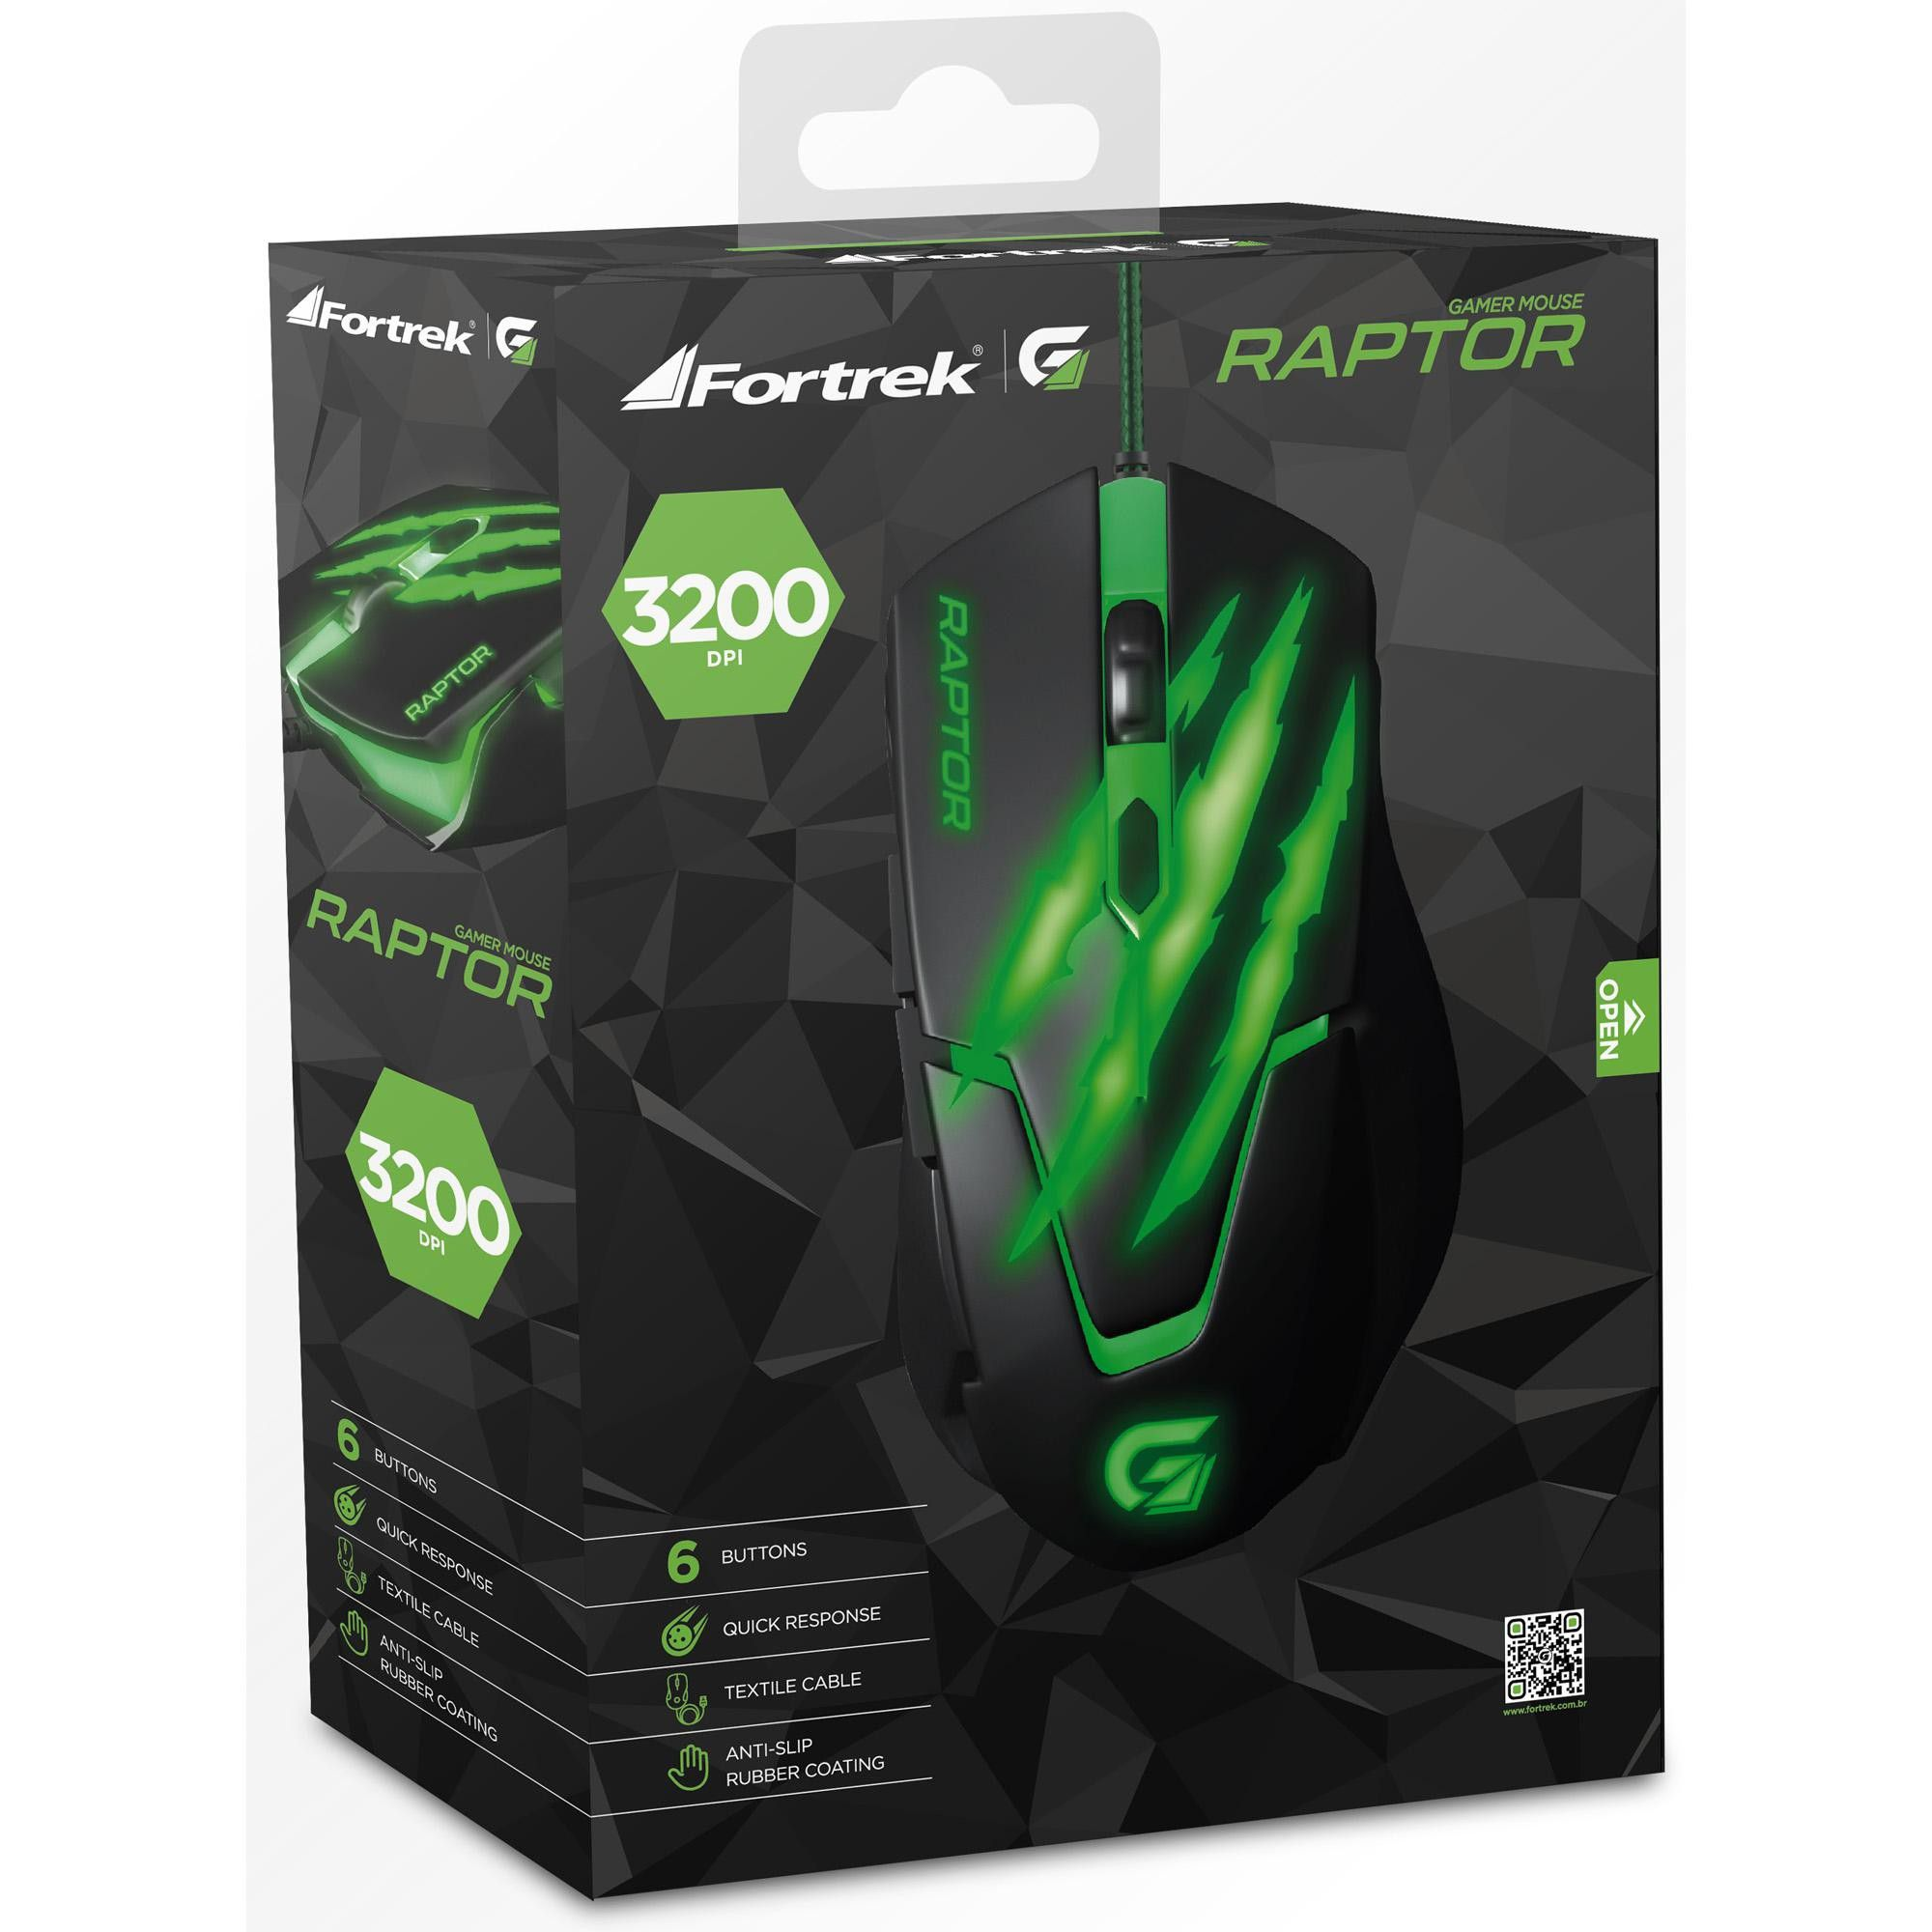 MOUSE GAMER USB RAPTOR OM-801 3200DPI - FORTREK